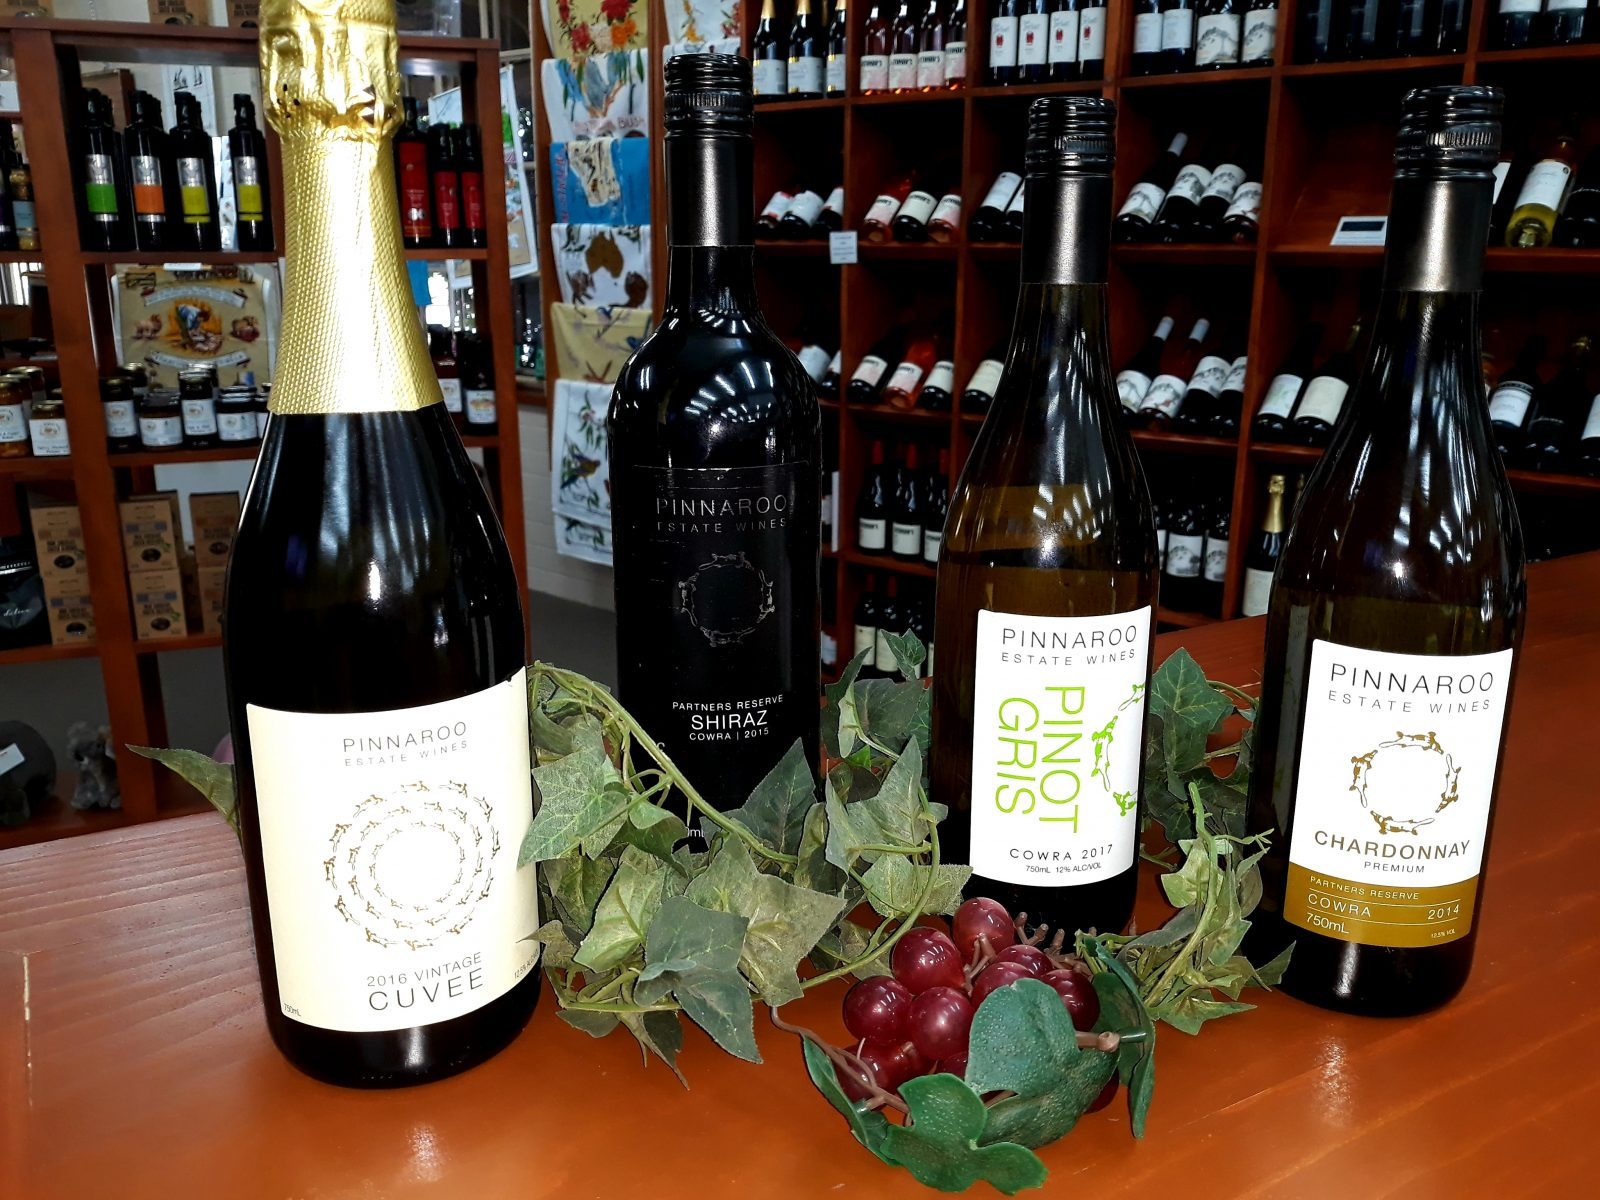 Selection of Pinnaroo wines available for sale at the Cowra Info Centre